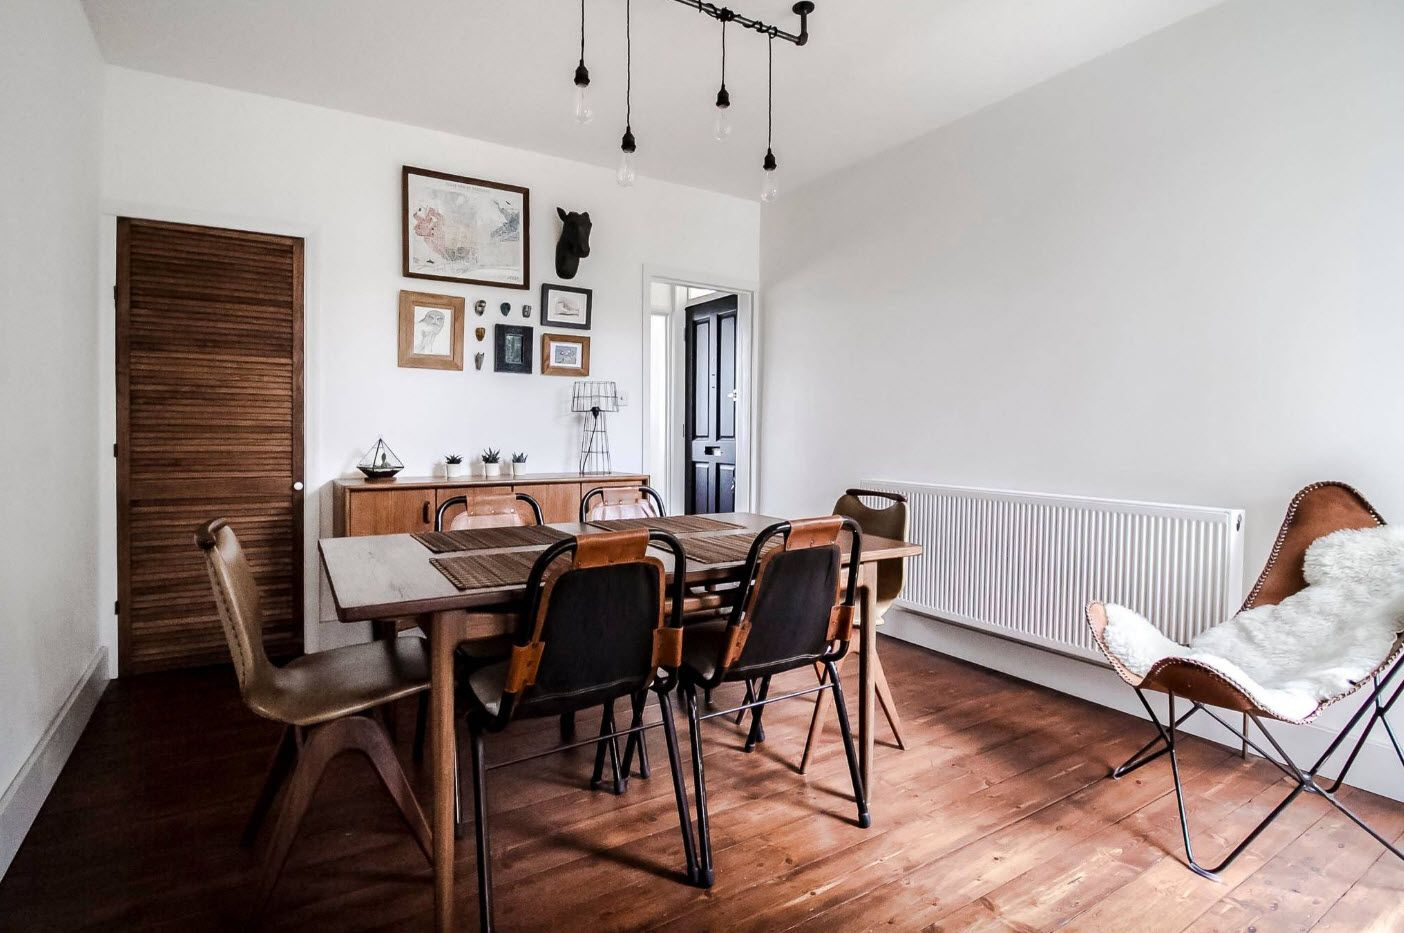 Home office ata the cottage with dark wooden chairs and wooden floor trimming